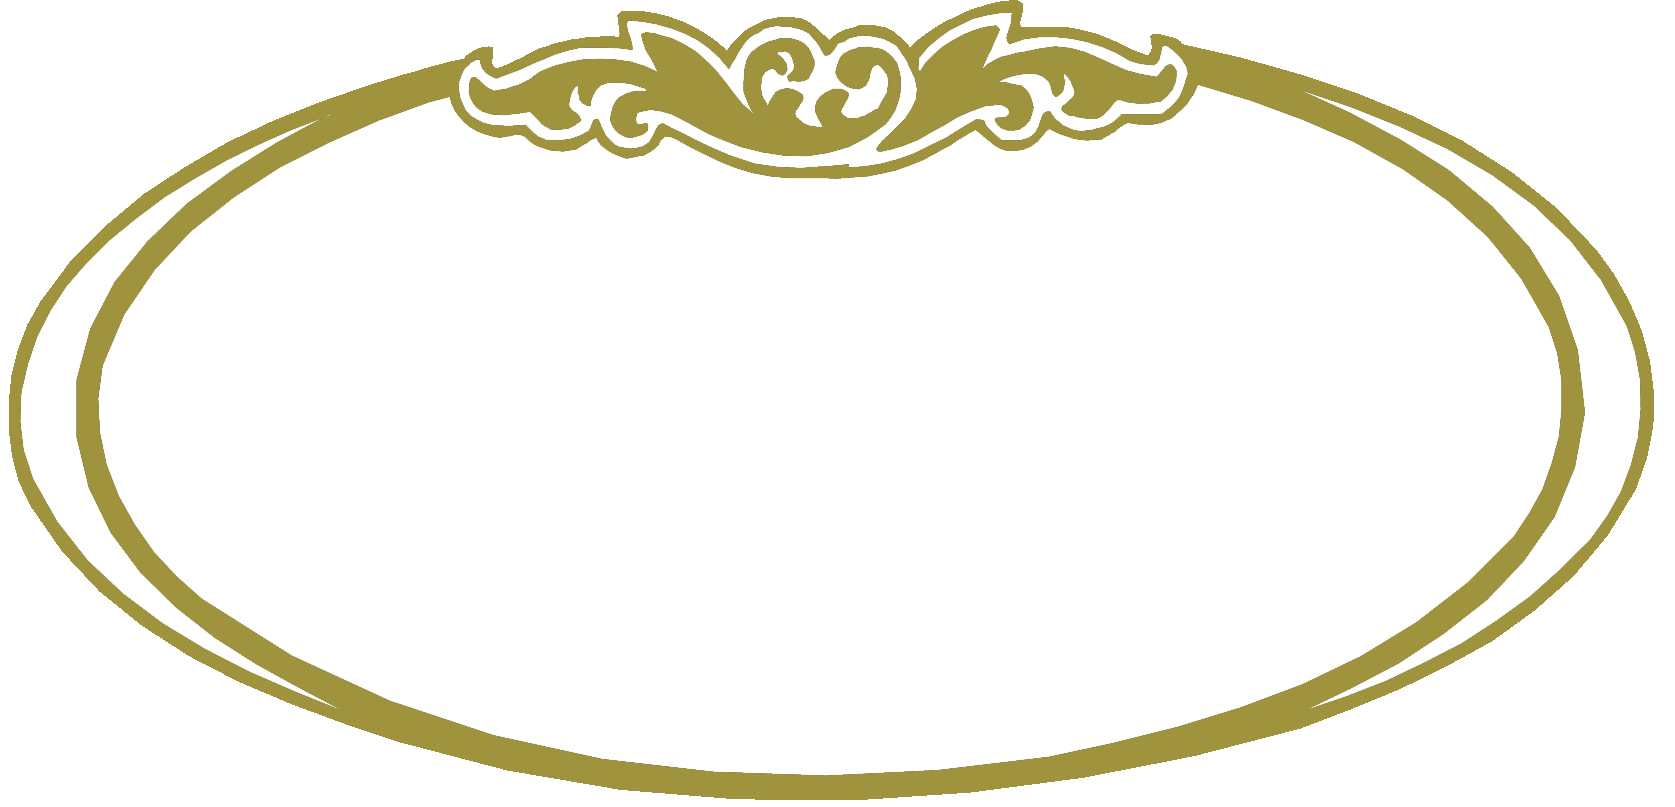 oval border copy